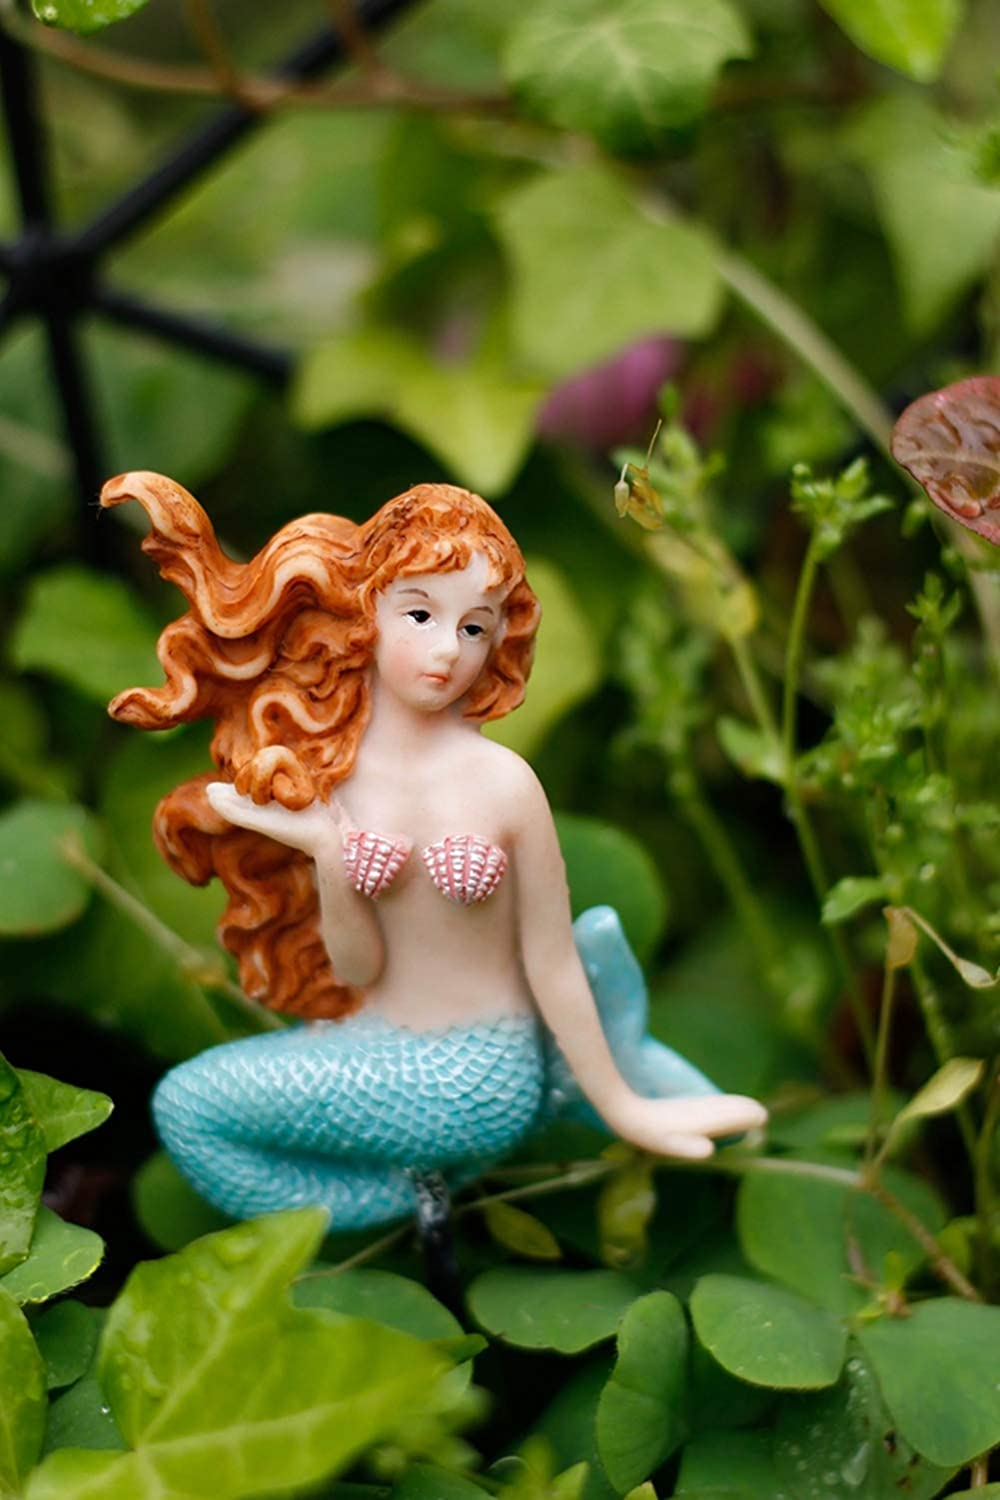 Colored MUAMAX Mini Mermaid Garden Stakes Miniature Fairy Ornaments Outdoor Planter Flower Decoration Pottery Decorative accessories Gardening Gifts